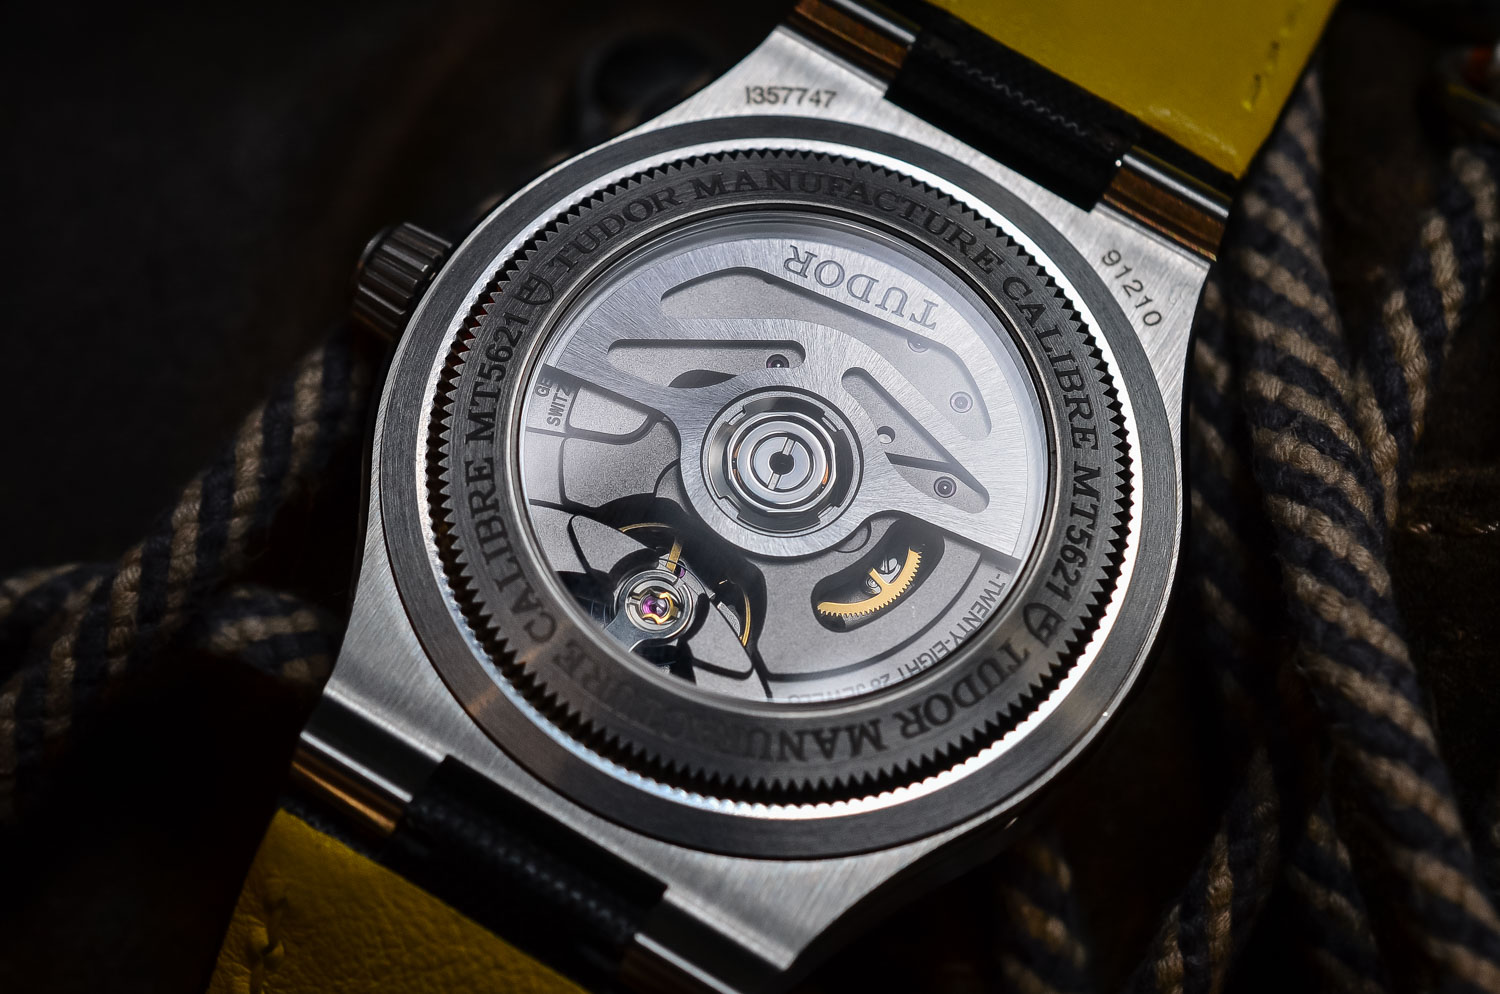 Tudor Manufacture movement